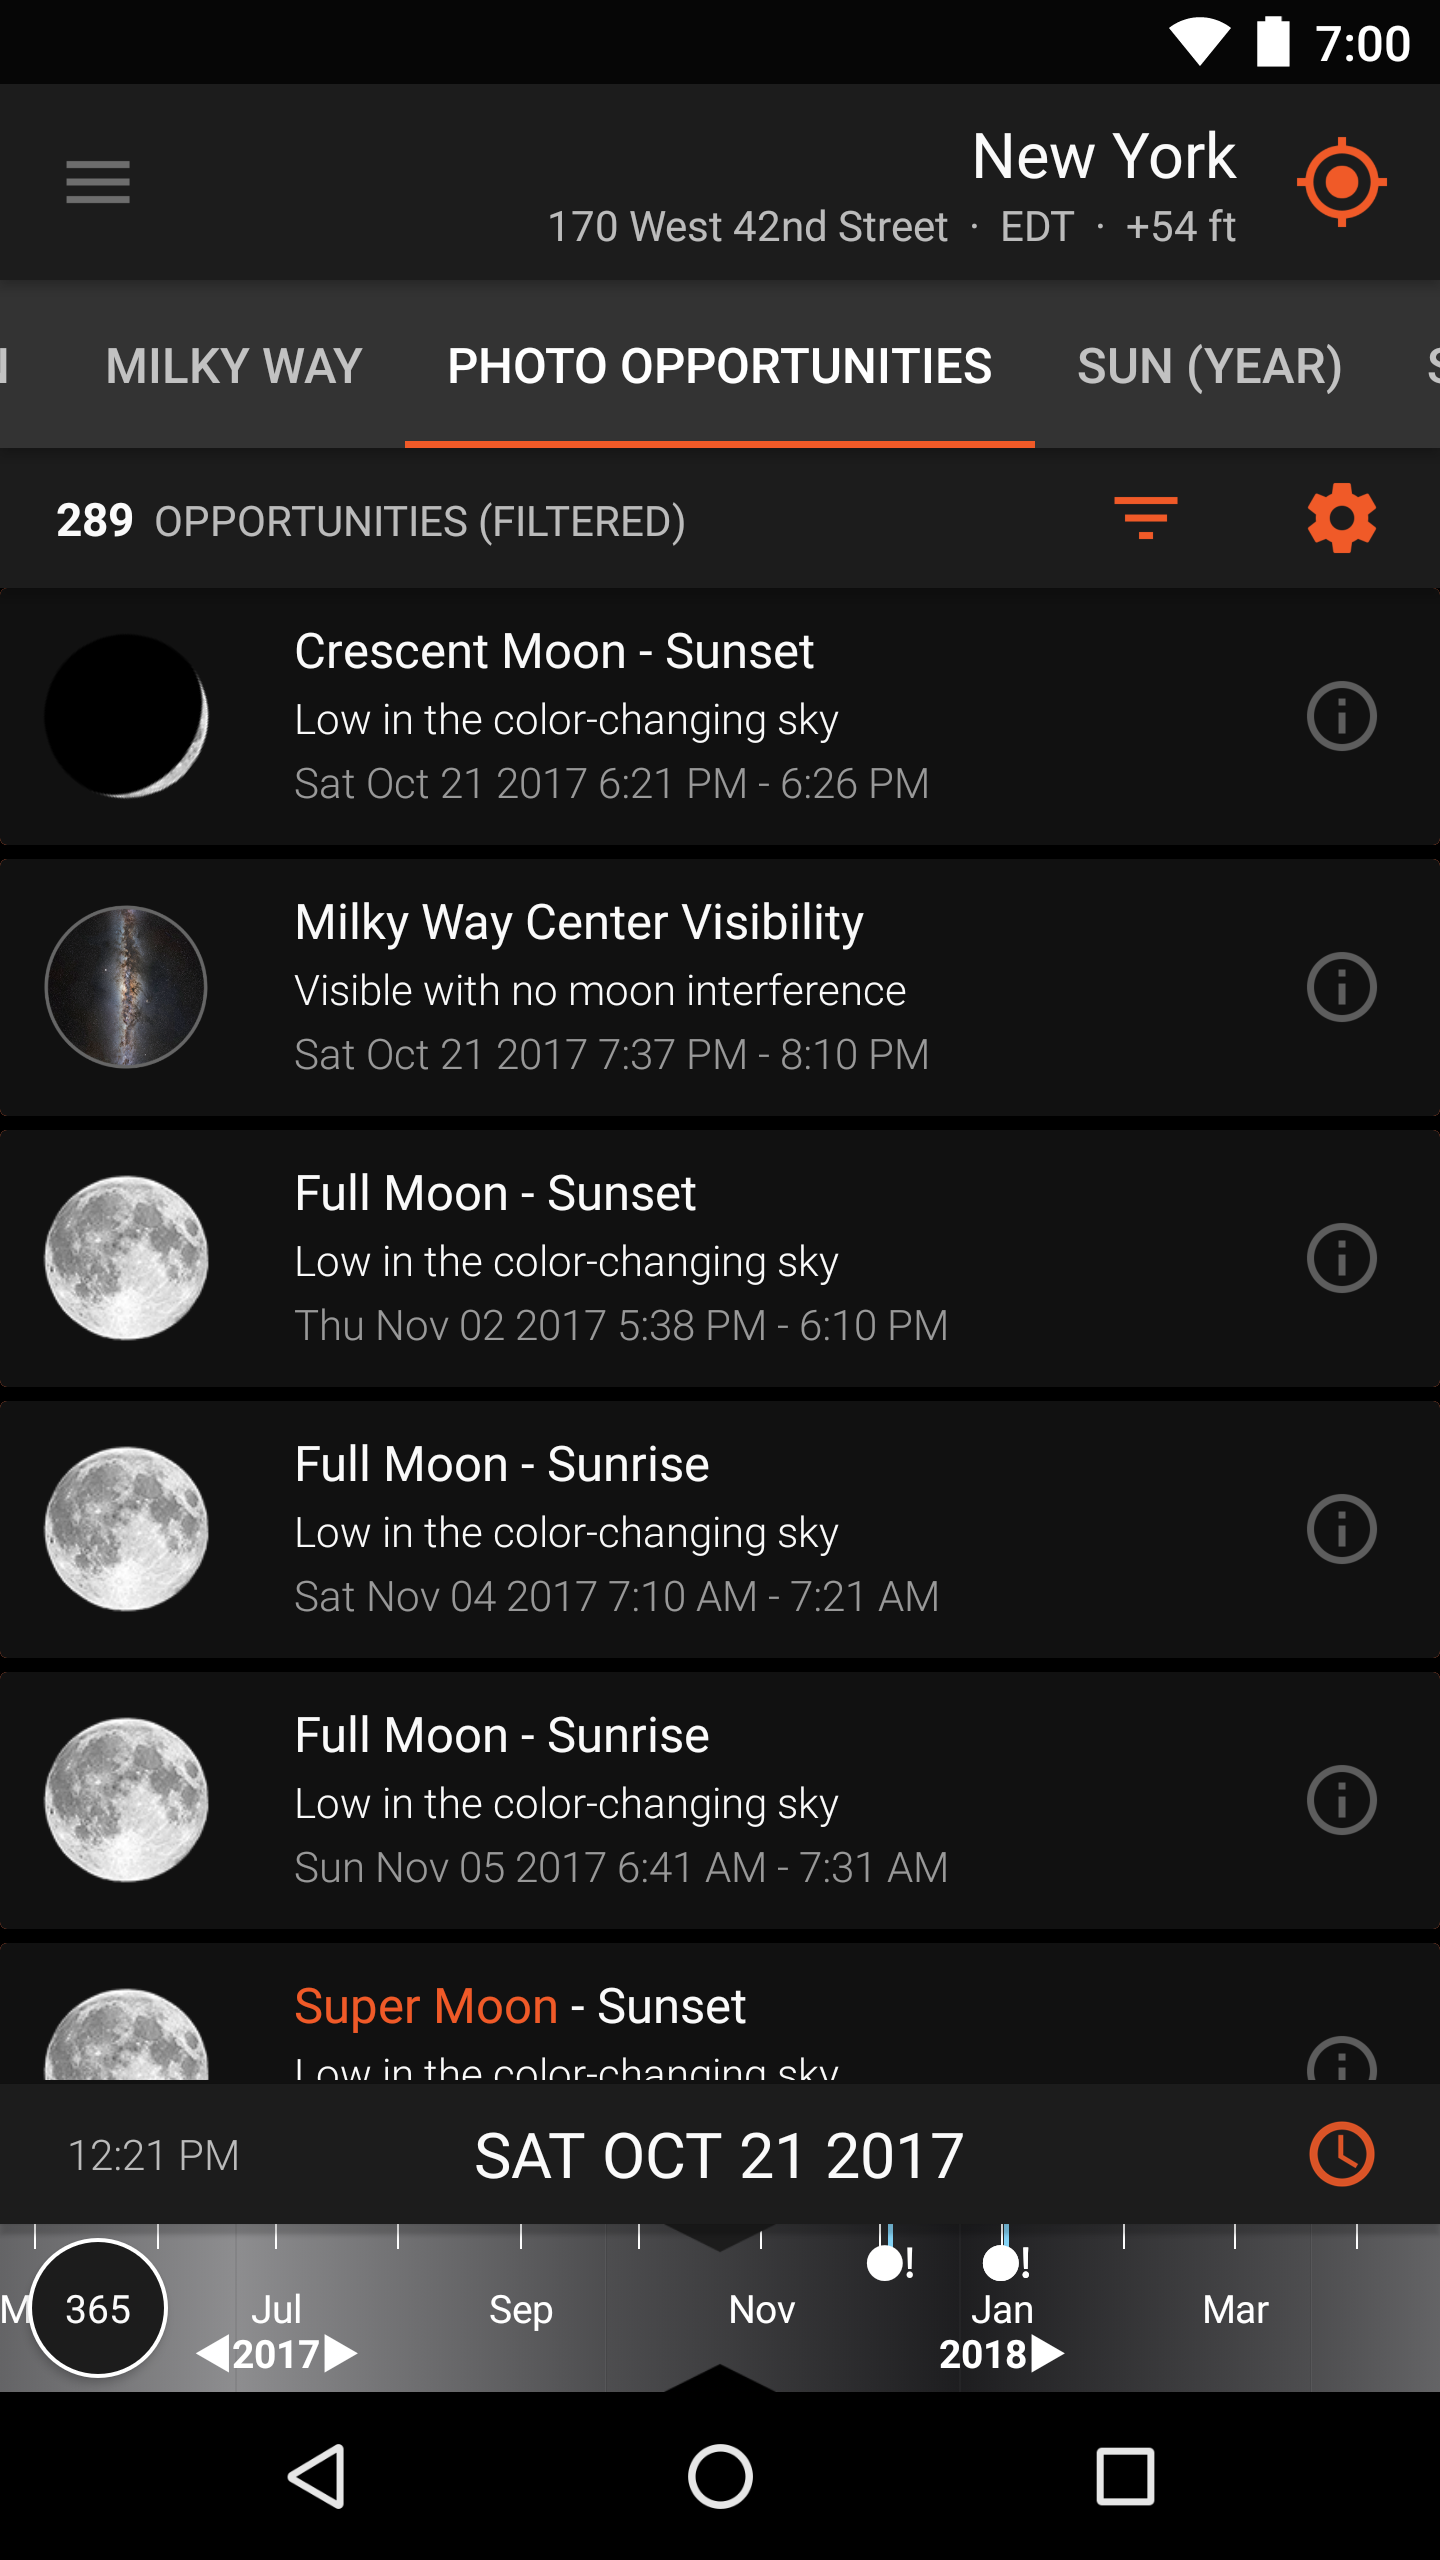 Sun Surveyor Moon Position Visualization And Tracking App The Best 038 Free Android Applications For Electronics Electrical Engineers Screenshot Photo Opportunities